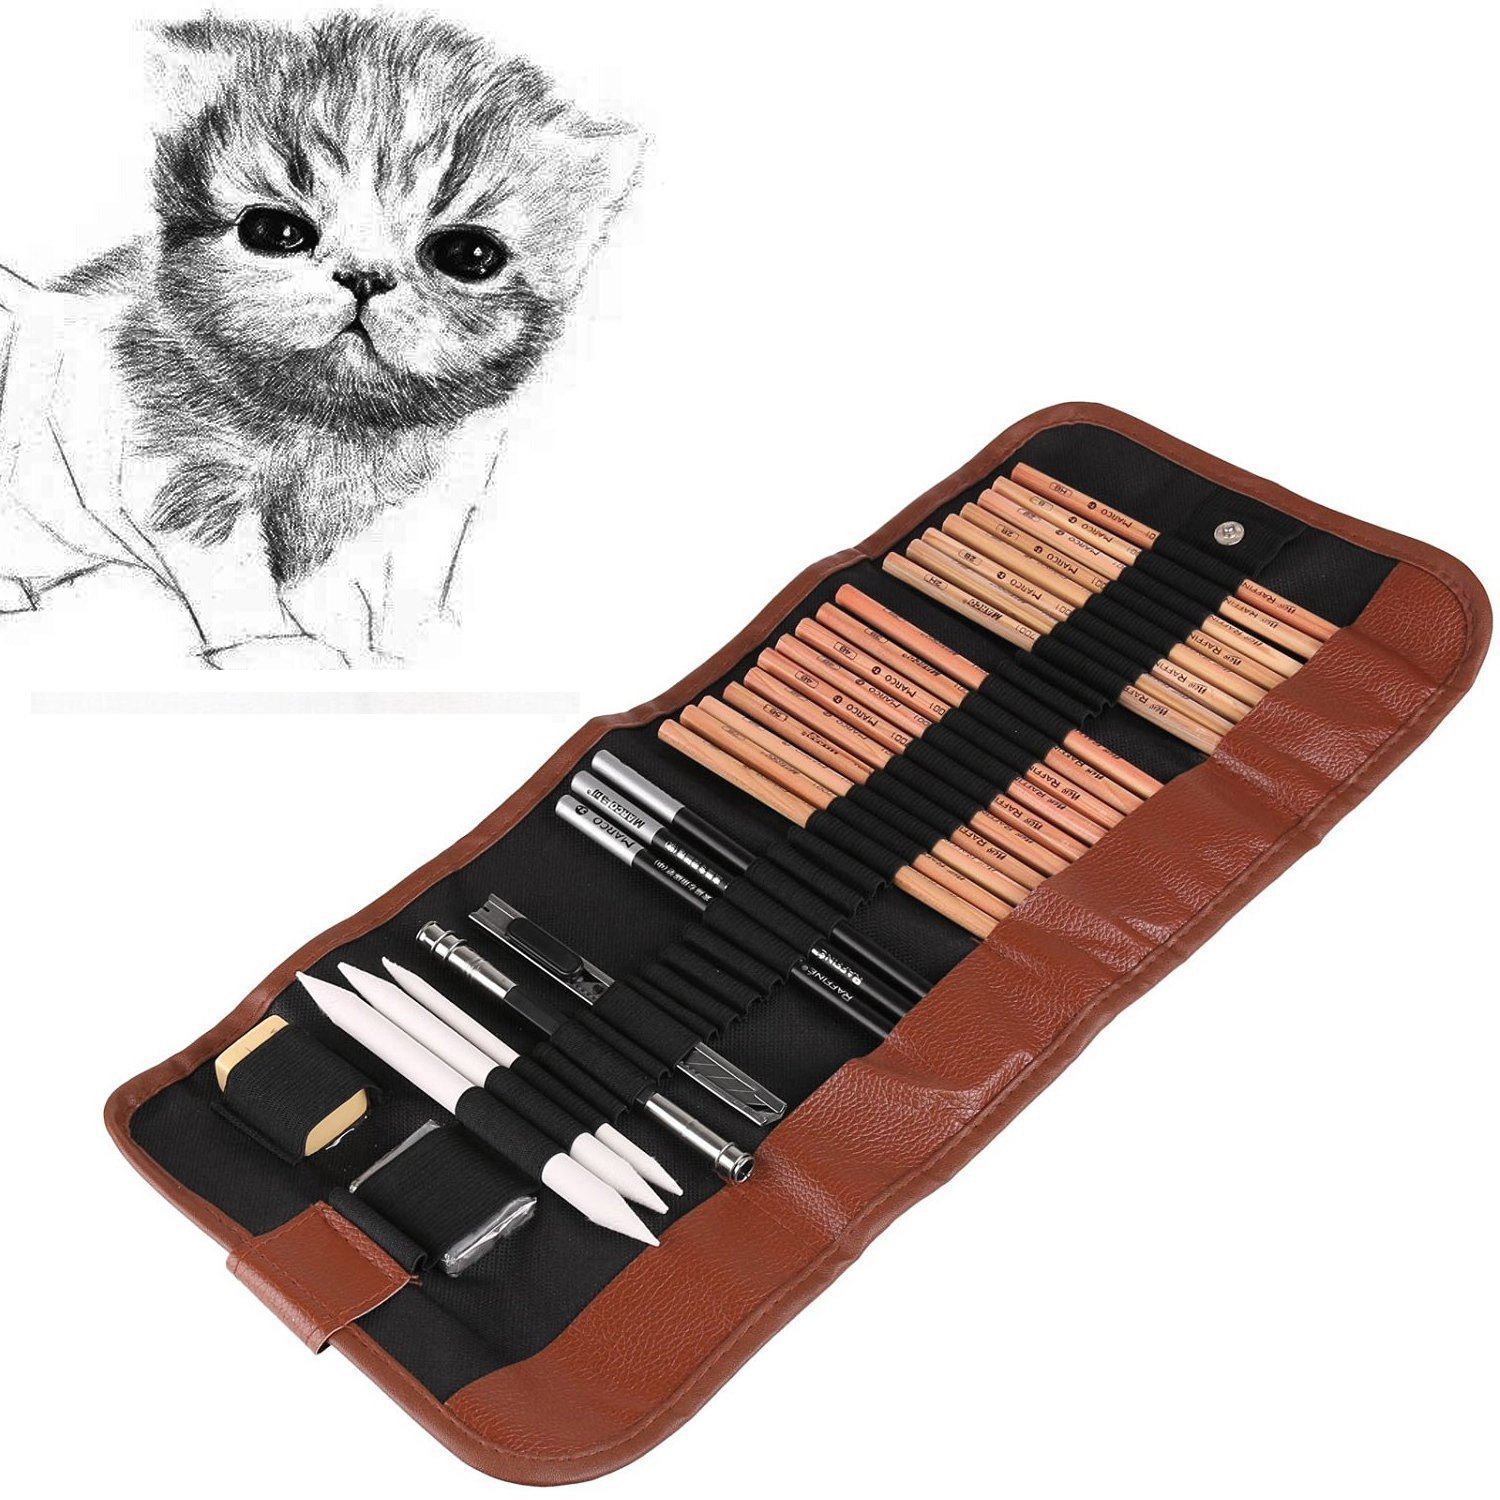 Powstro Sketching Pencil Set,18pcs Pen Charcoal Sketch Set Roll Up Canvas Carry Pouch of Pencils Eraser Craft Knife Pencil Extender 29pcs Total for Beginners Artist